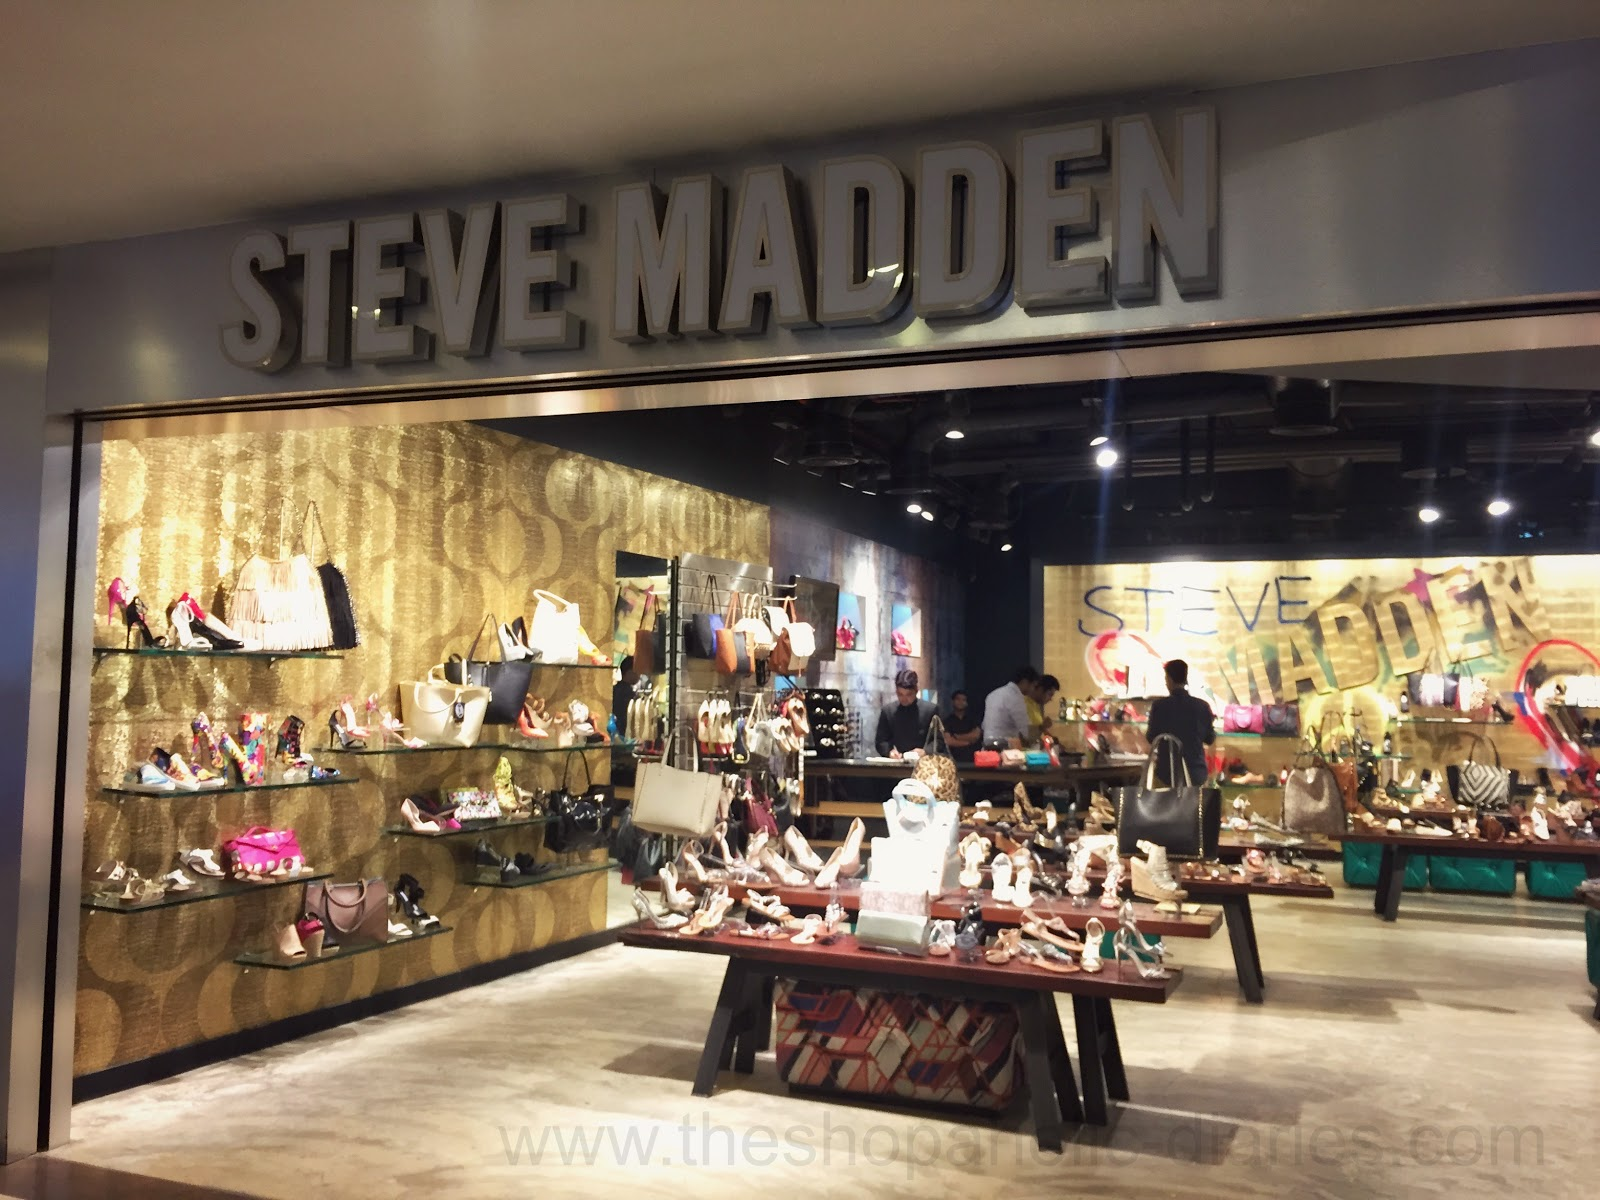 b865f796a76 STEVE MADDEN - Knowing my love for STEVE MADDEN shoes